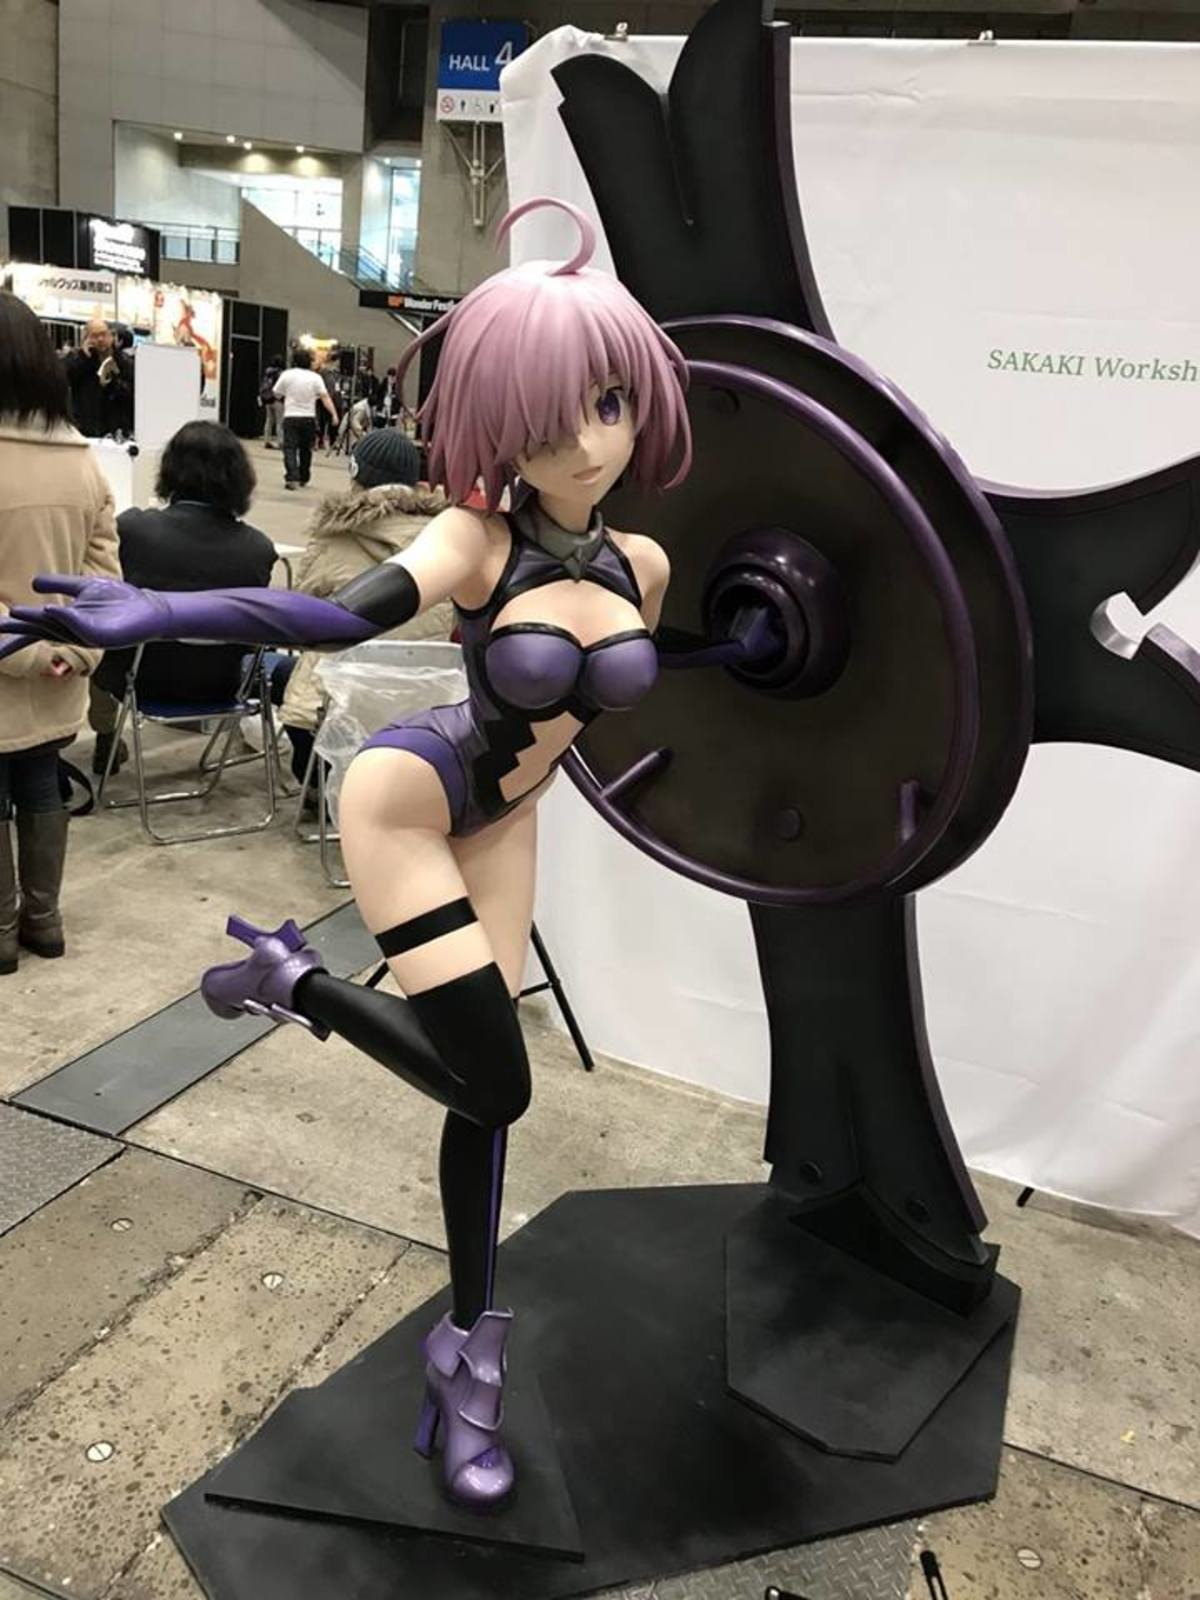 Life Sized Mashu. join list: BewbDudes (2617 subs)Mention History join list:. Now we're talkin'